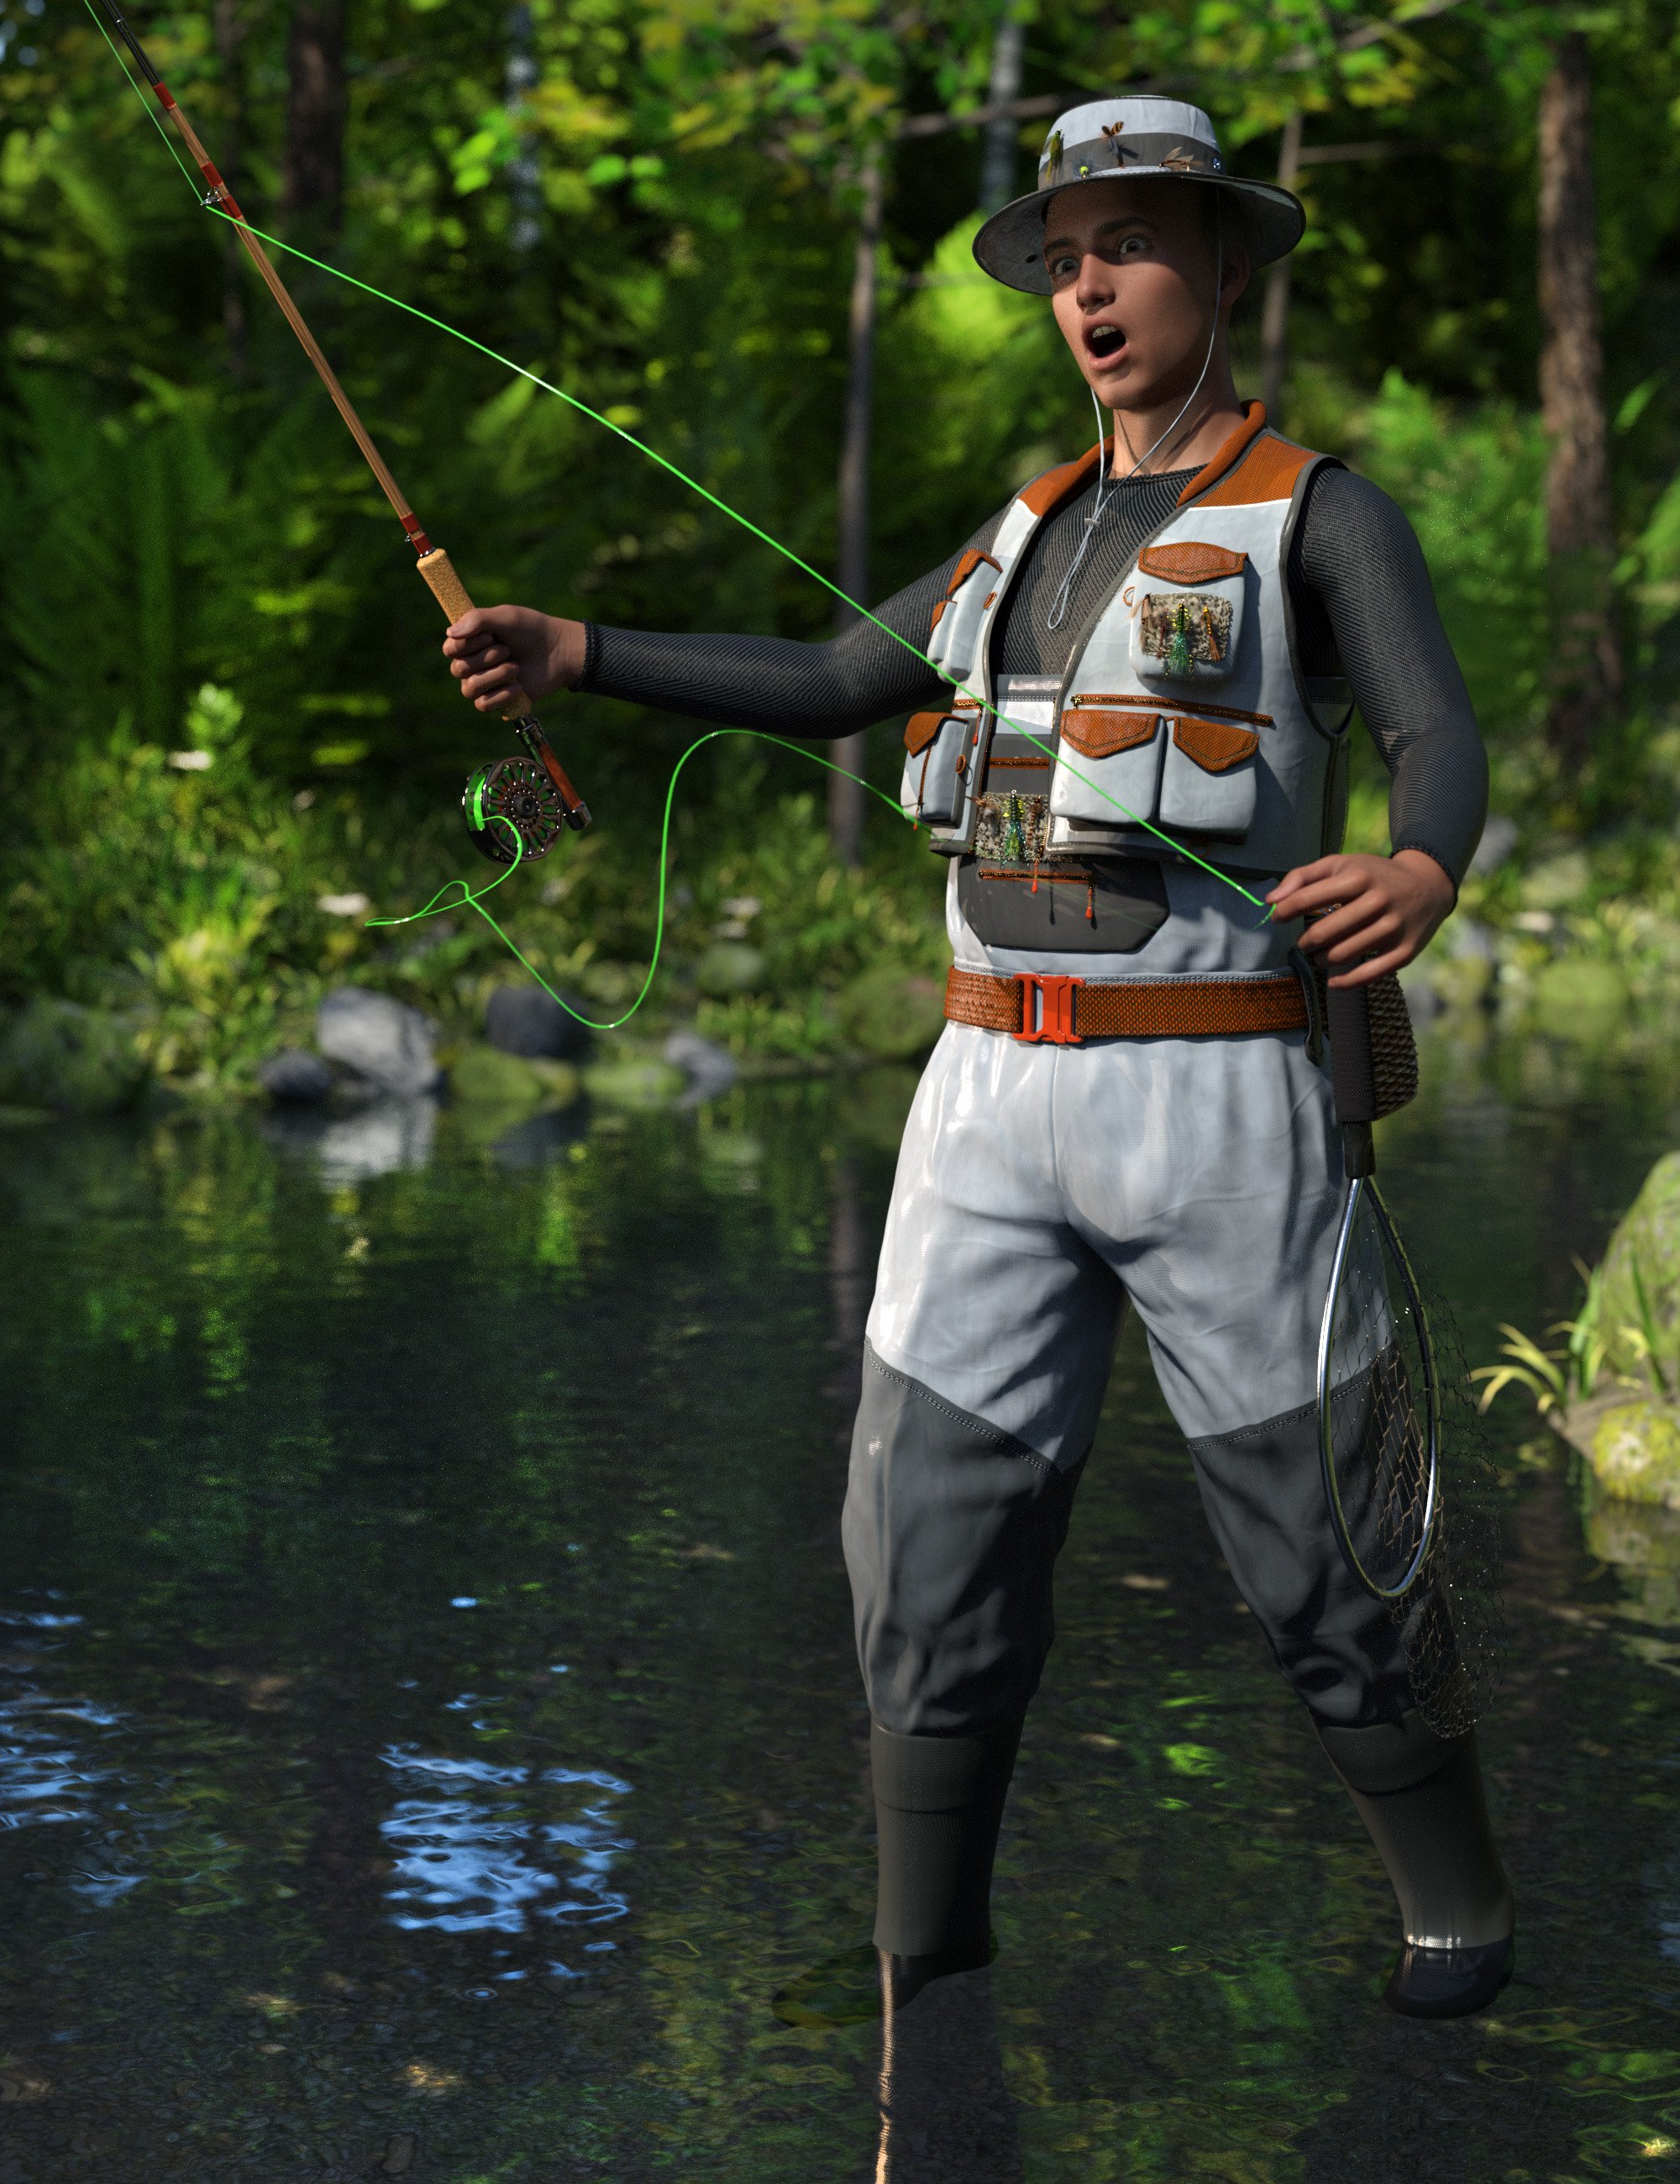 Angler Outfit for Genesis 8 Males by: The Alchemist, 3D Models by Daz 3D